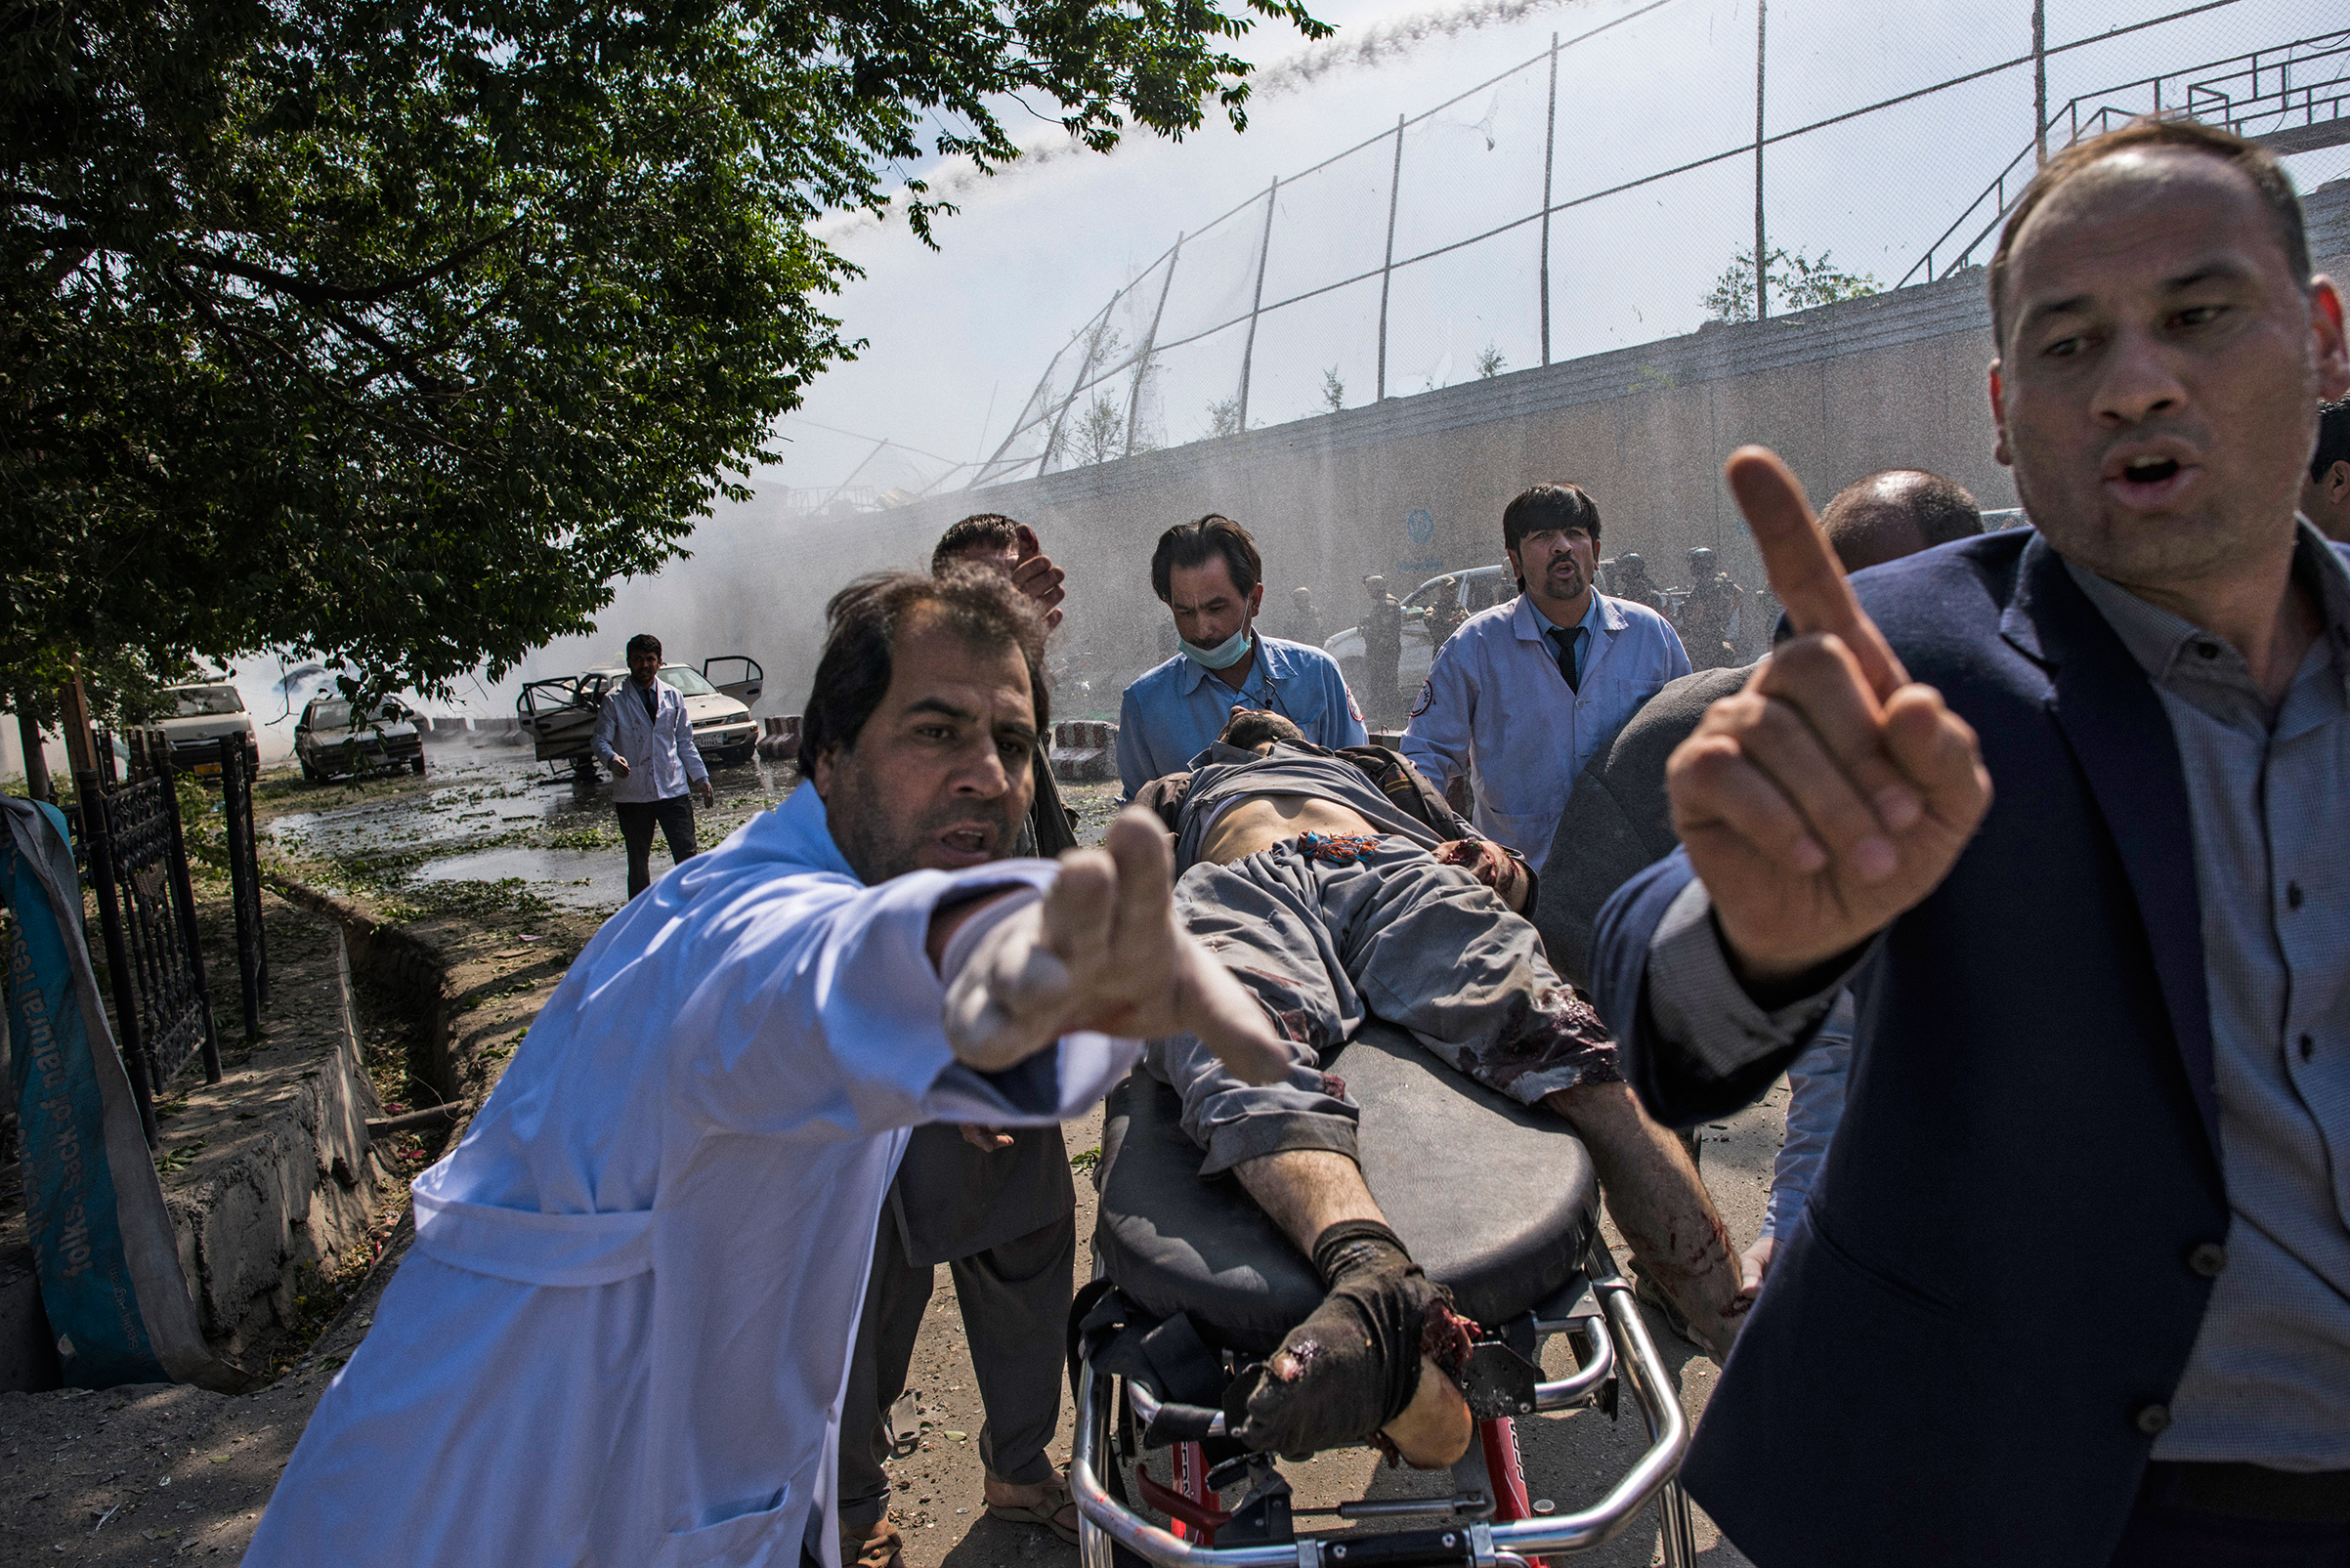 An injured man is carried to an ambulance after the May 31 blast in Kabul that left at least 90 dead